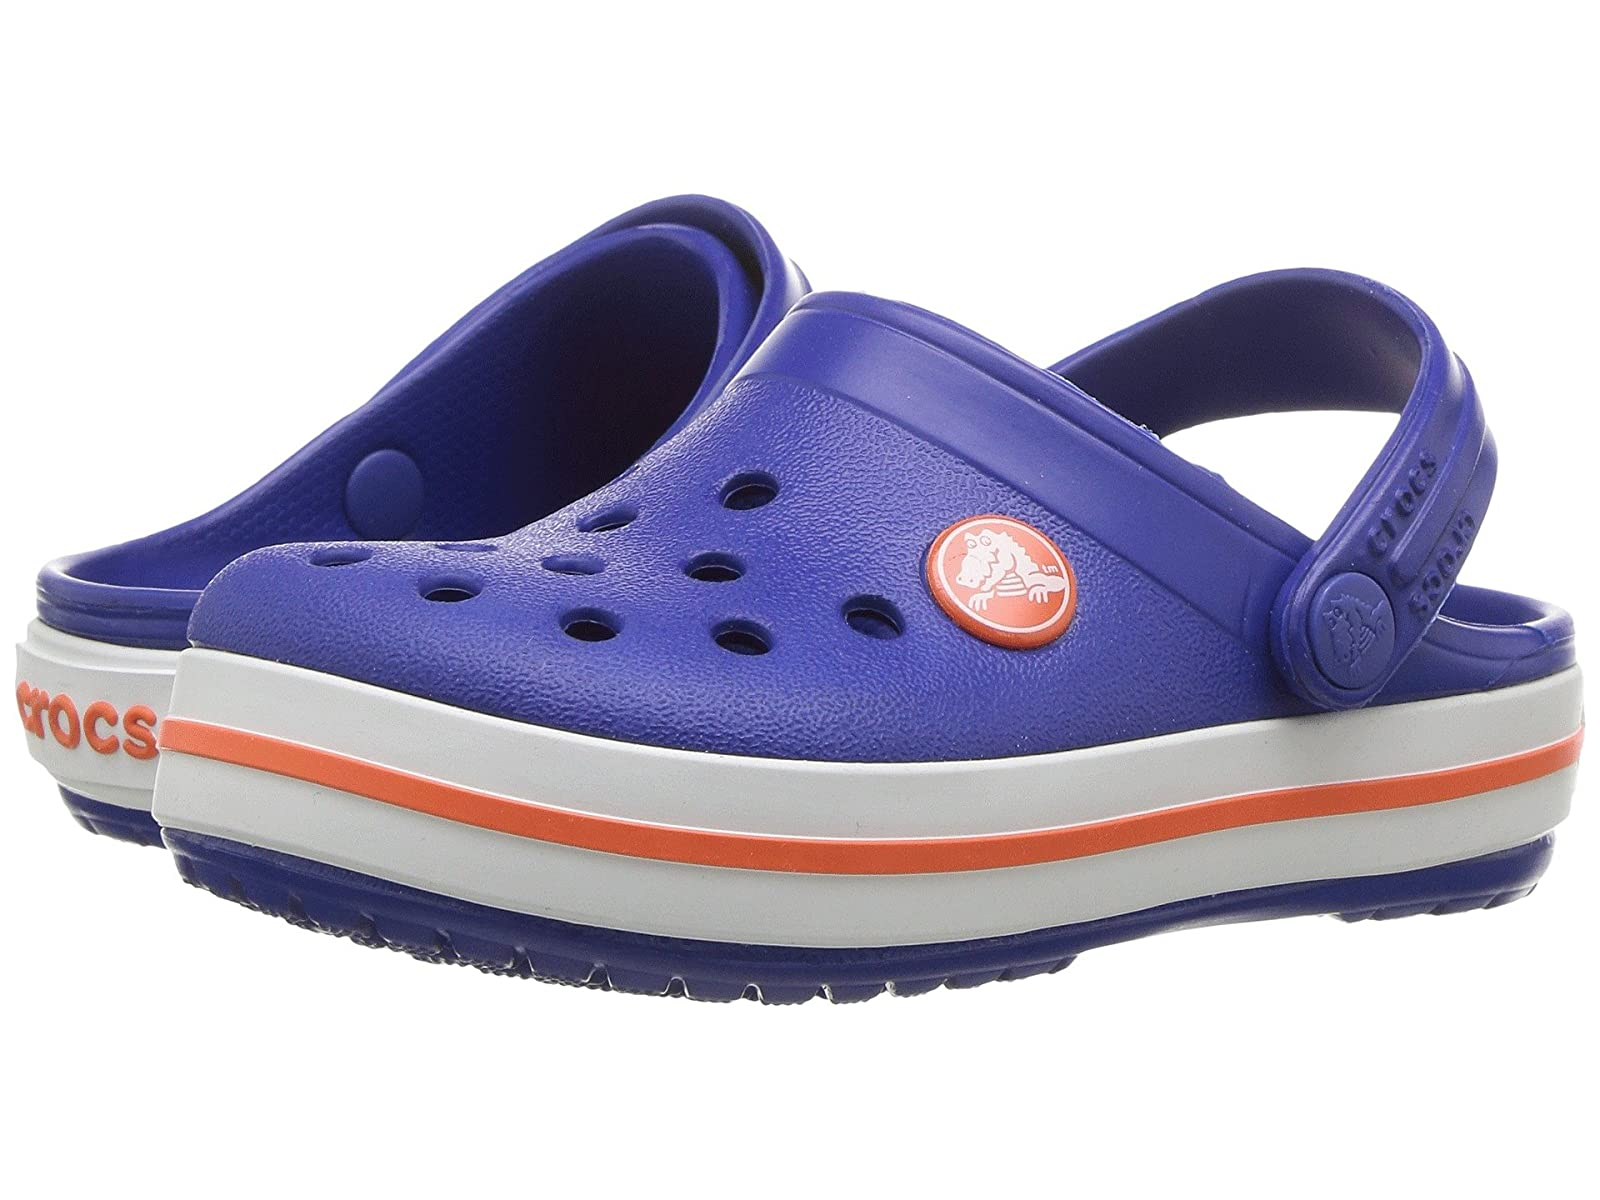 Crocs Kids Crocband Clog (Toddler/Little Kid)Economical and quality shoes